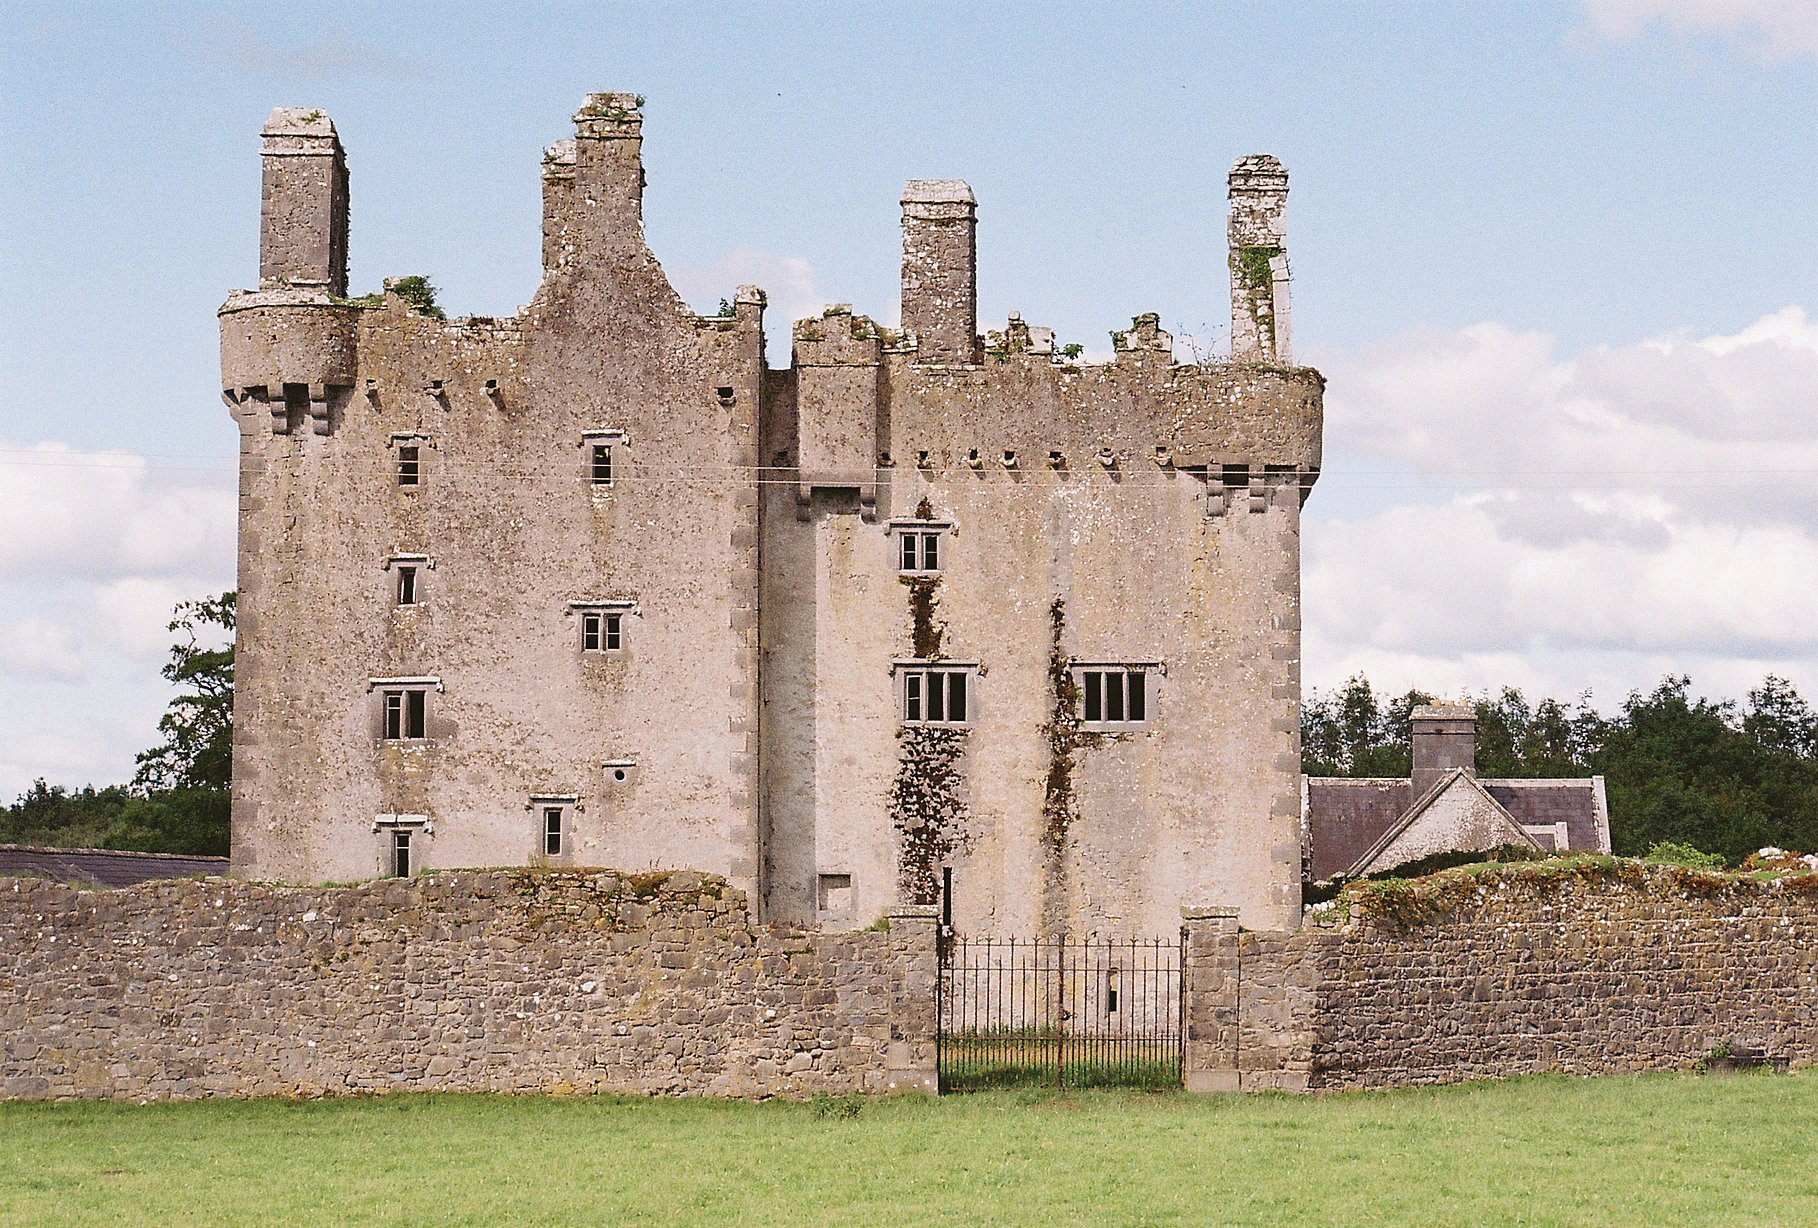 Curraghgloss, County Tipperary, Ireland 1 - 11652641